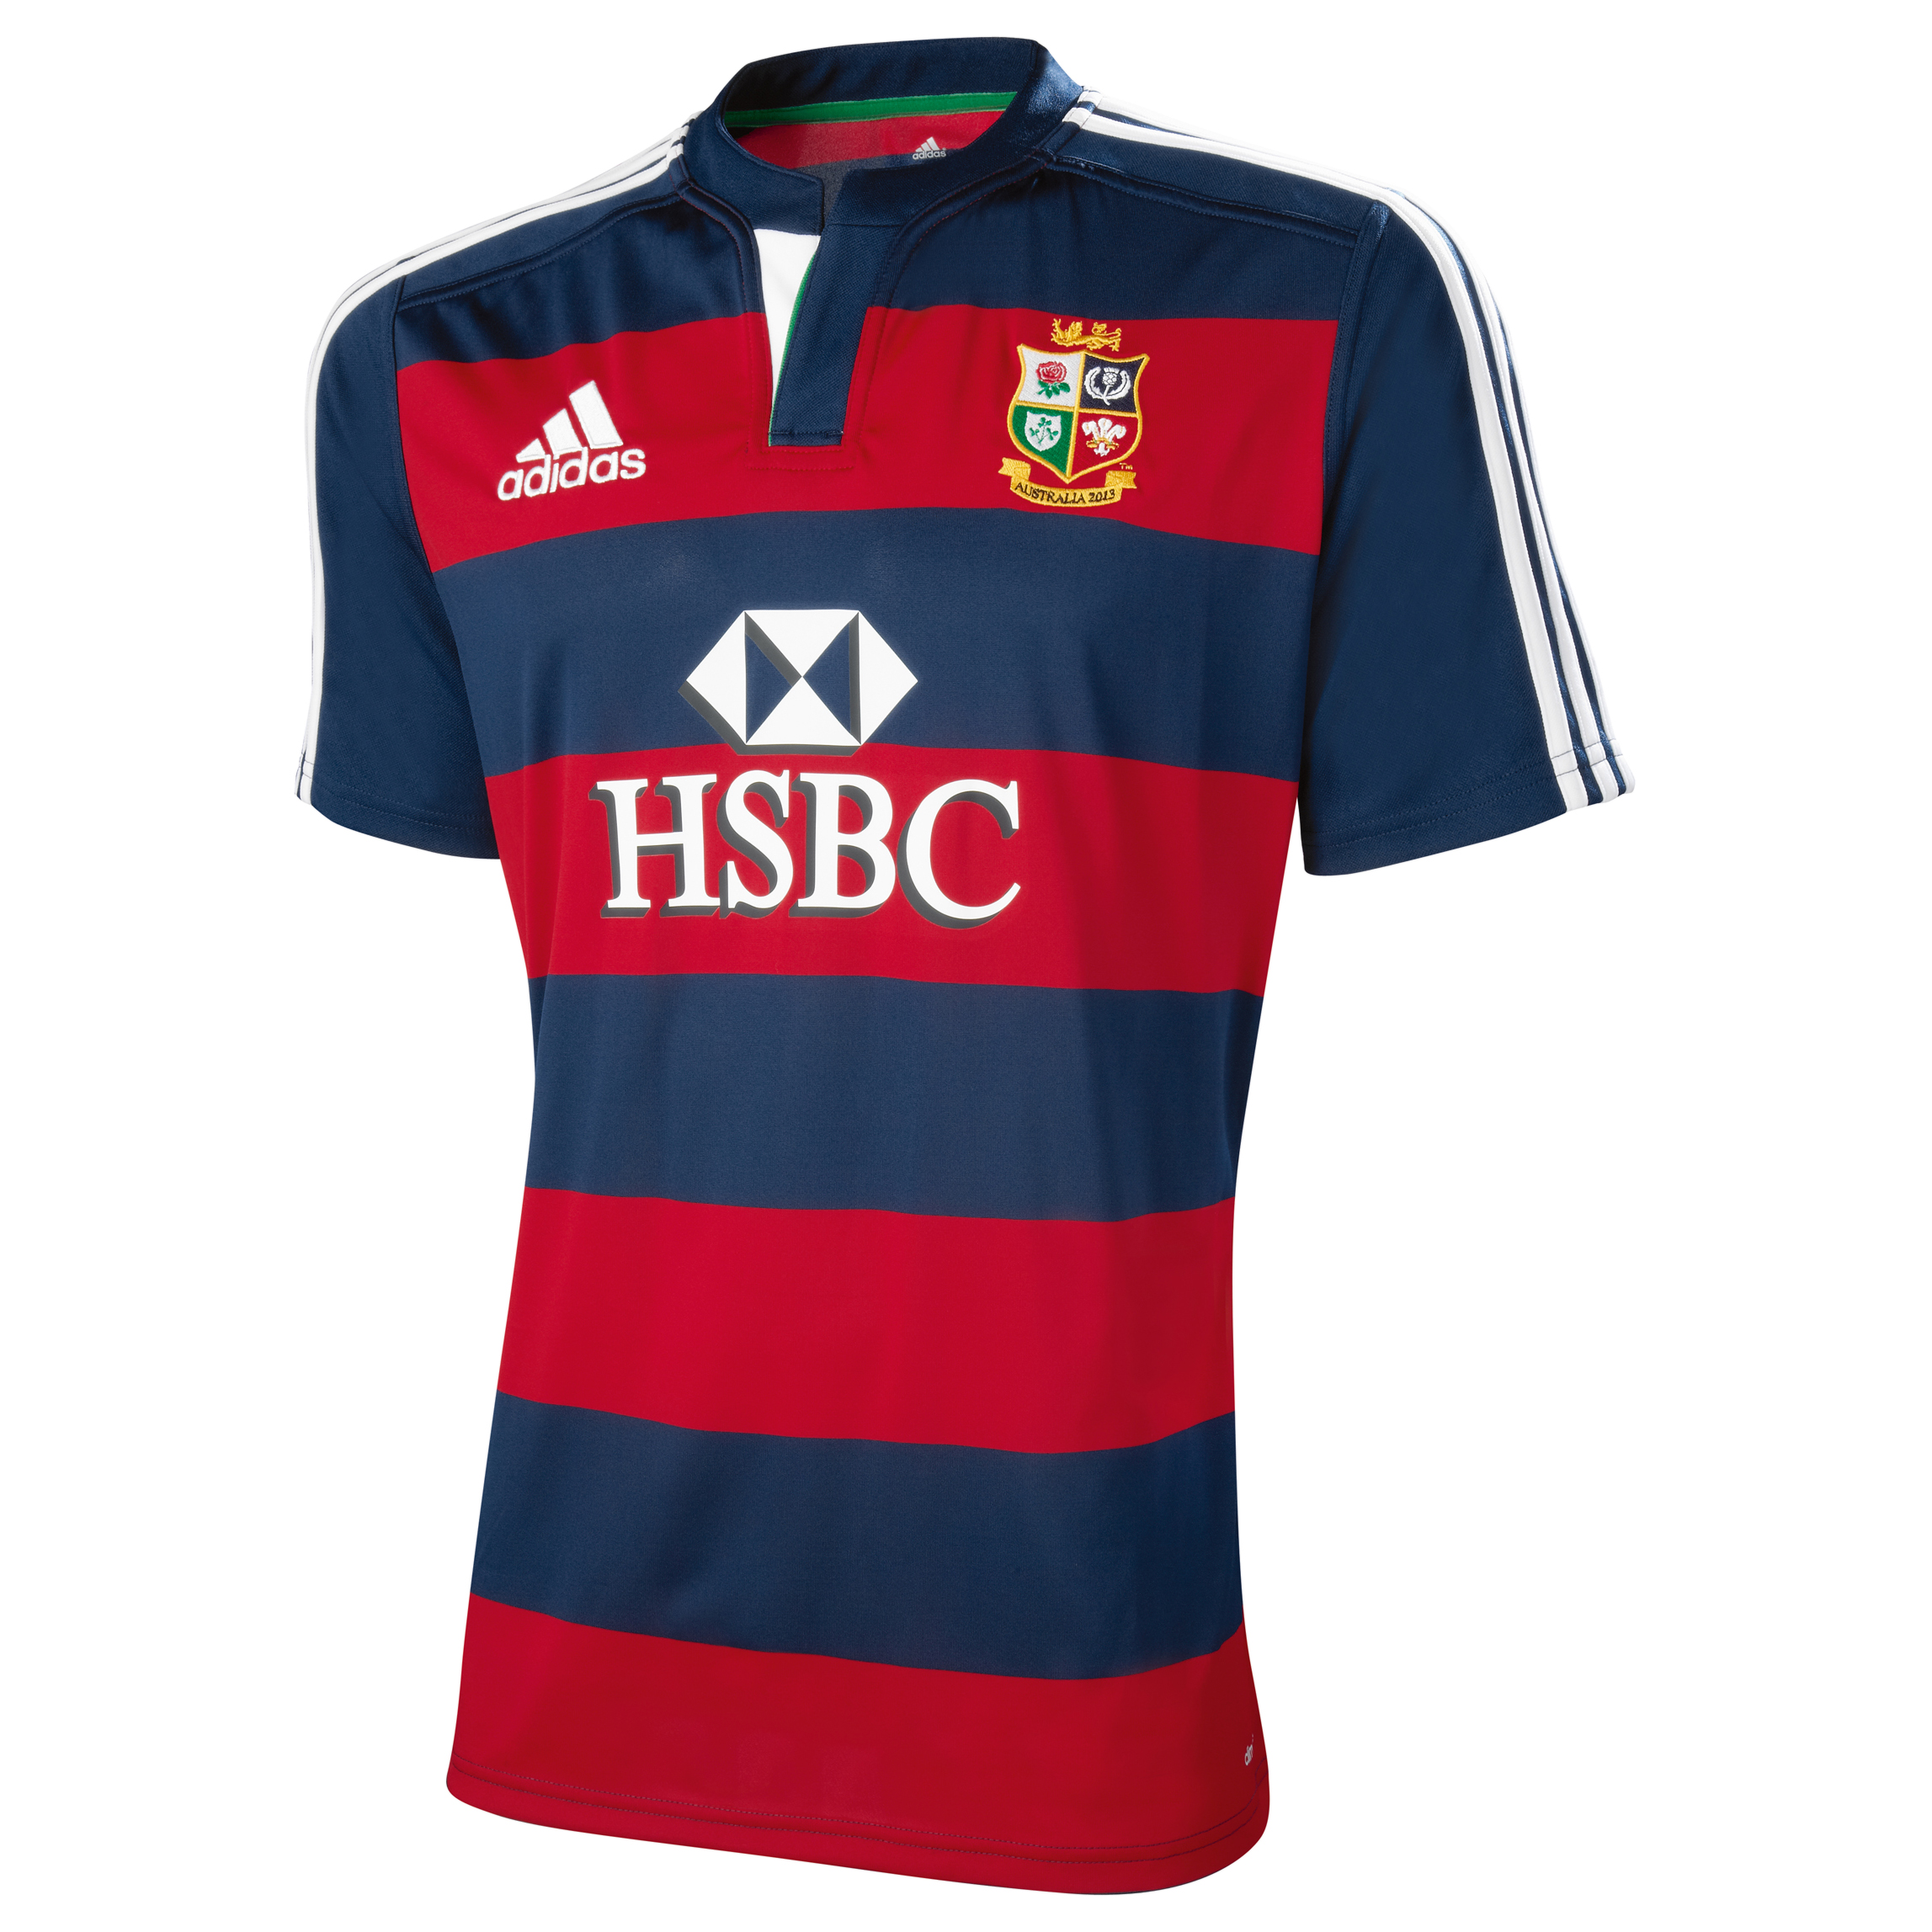 adidas British and Irish Lions Pre-Match Training Top - Short Sleeve - University Red/Collegiate Navy